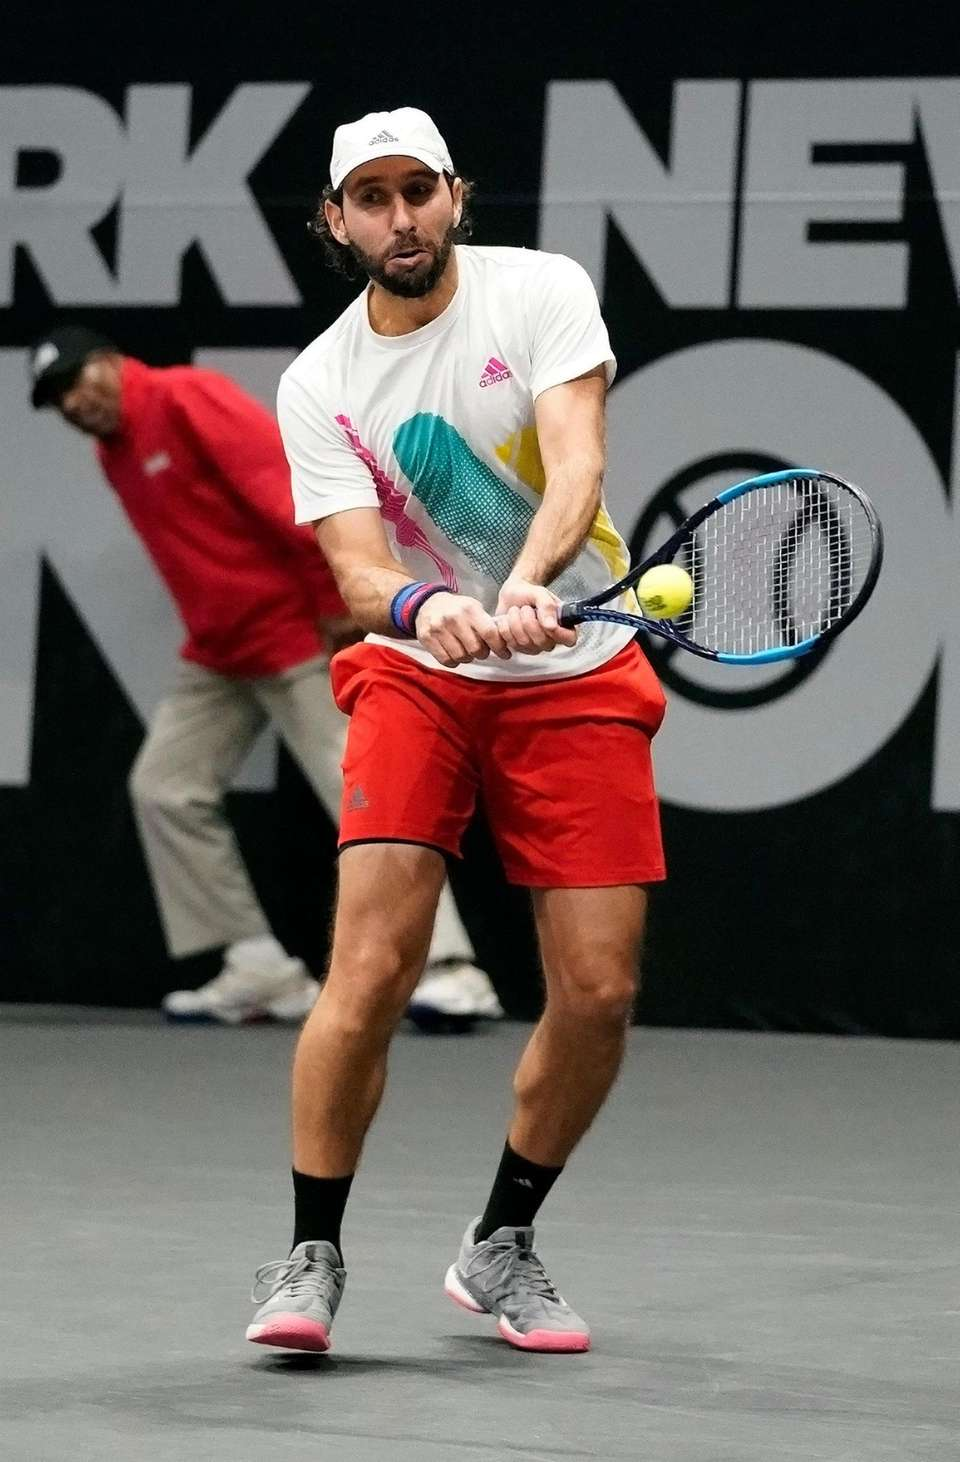 Santiago Gonzalez (l) with the backhand return in